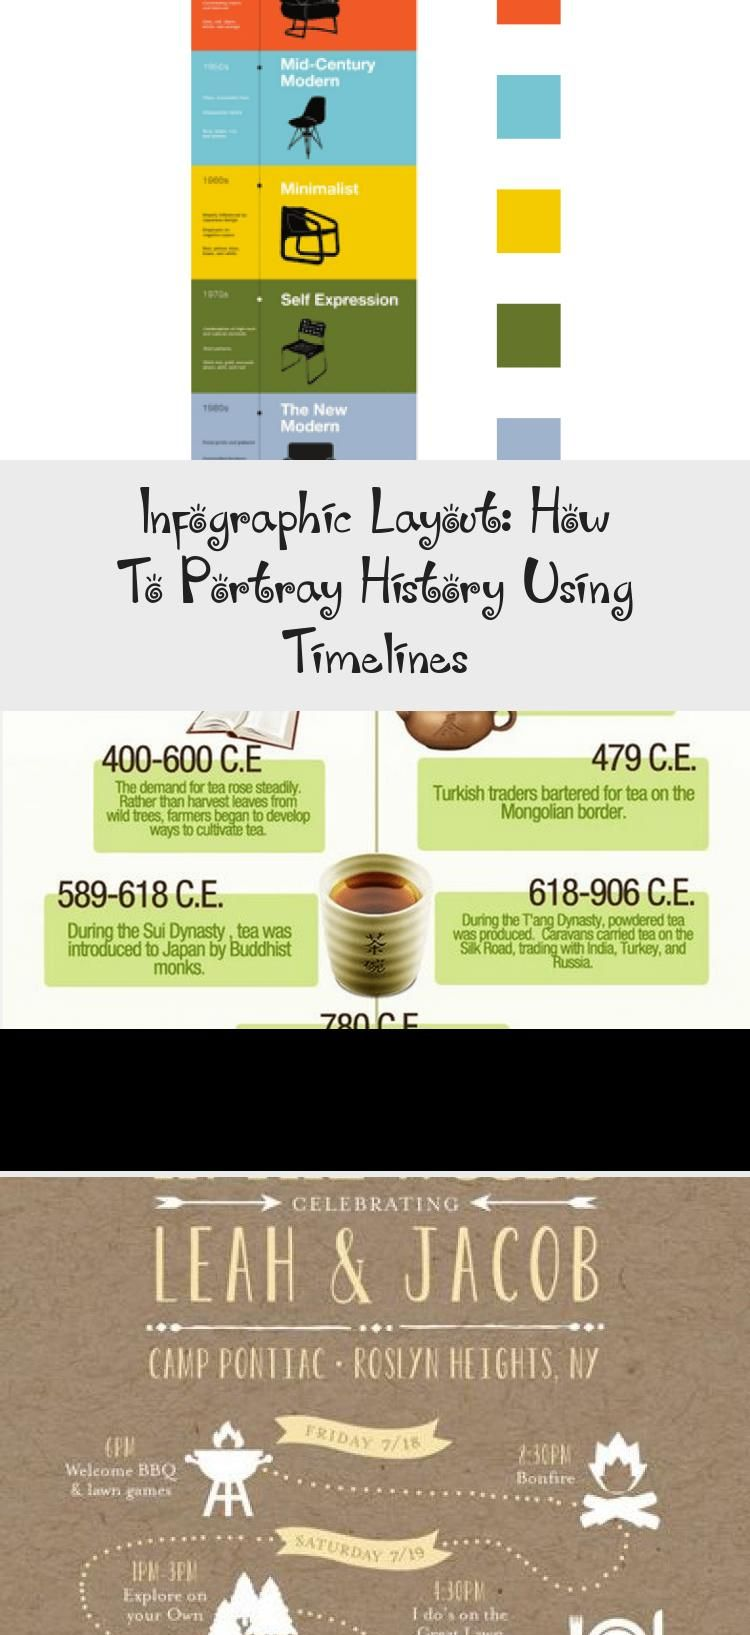 Infographic Layout How To Portray History Using Timelines In 2020 With Images Infographic Timeline Infographic Infographic Layout